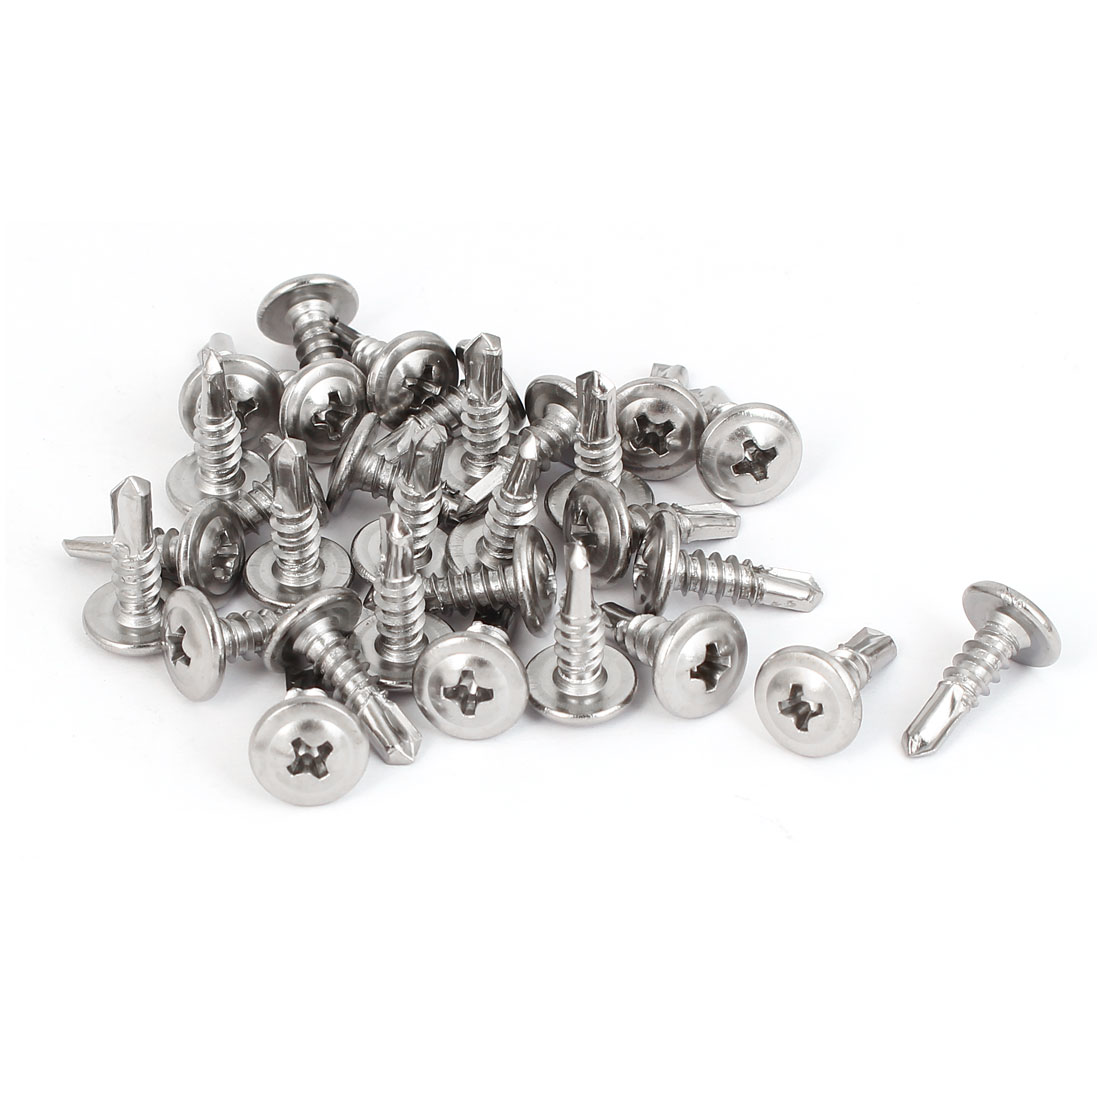 M4.8 x 16mm Metal Round Phillips Head Self Drilling Tek Screws 30 Pcs